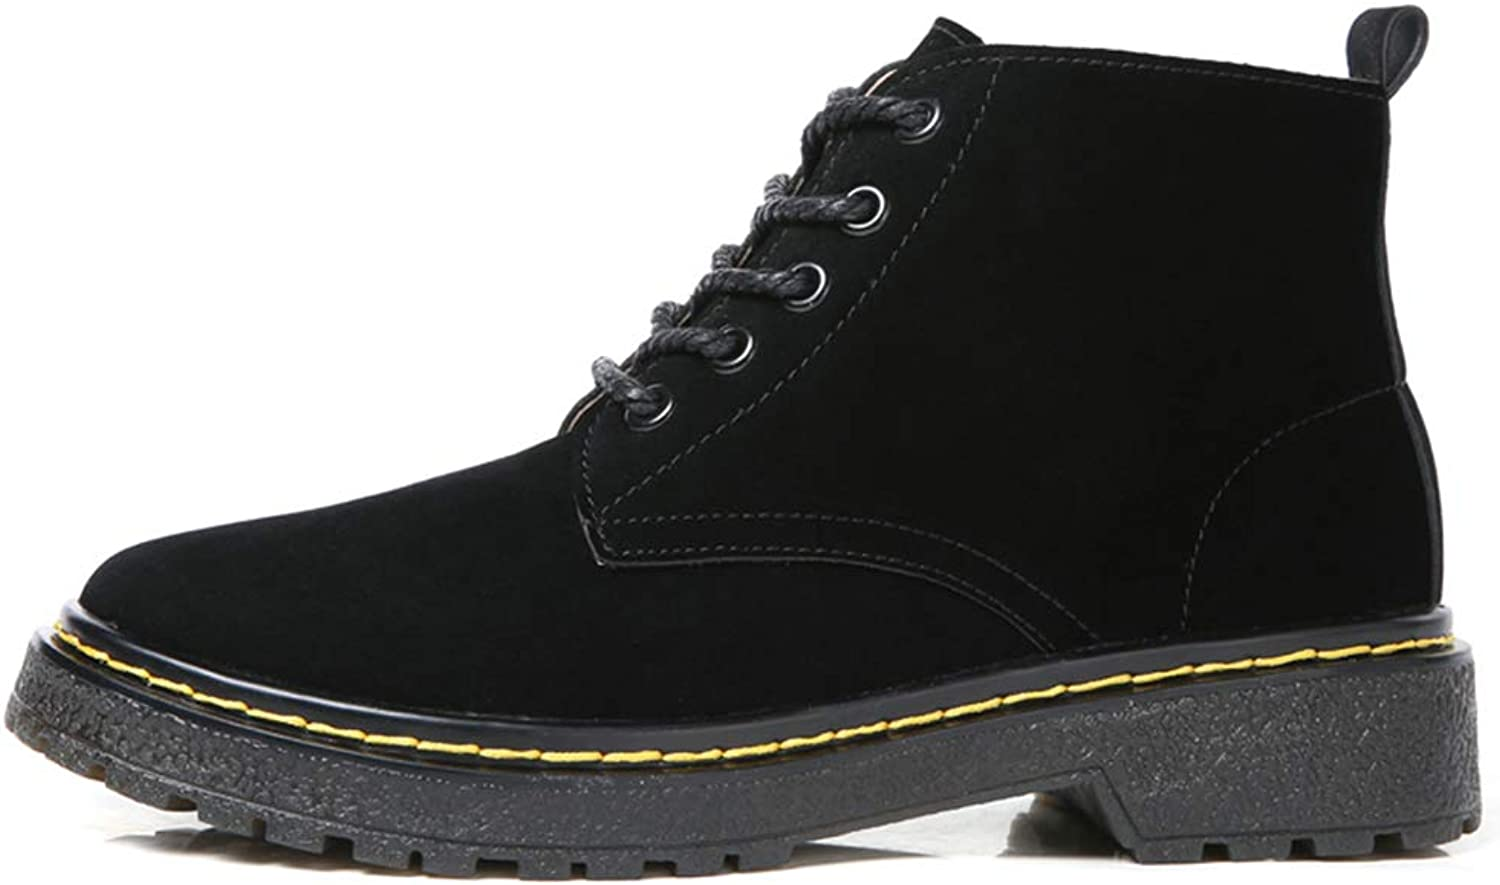 Hoxekle Ankle Boots Low Heel Suede Waterproof Lace Up Slip On Martin Style Winter Casual Outdoor Boot